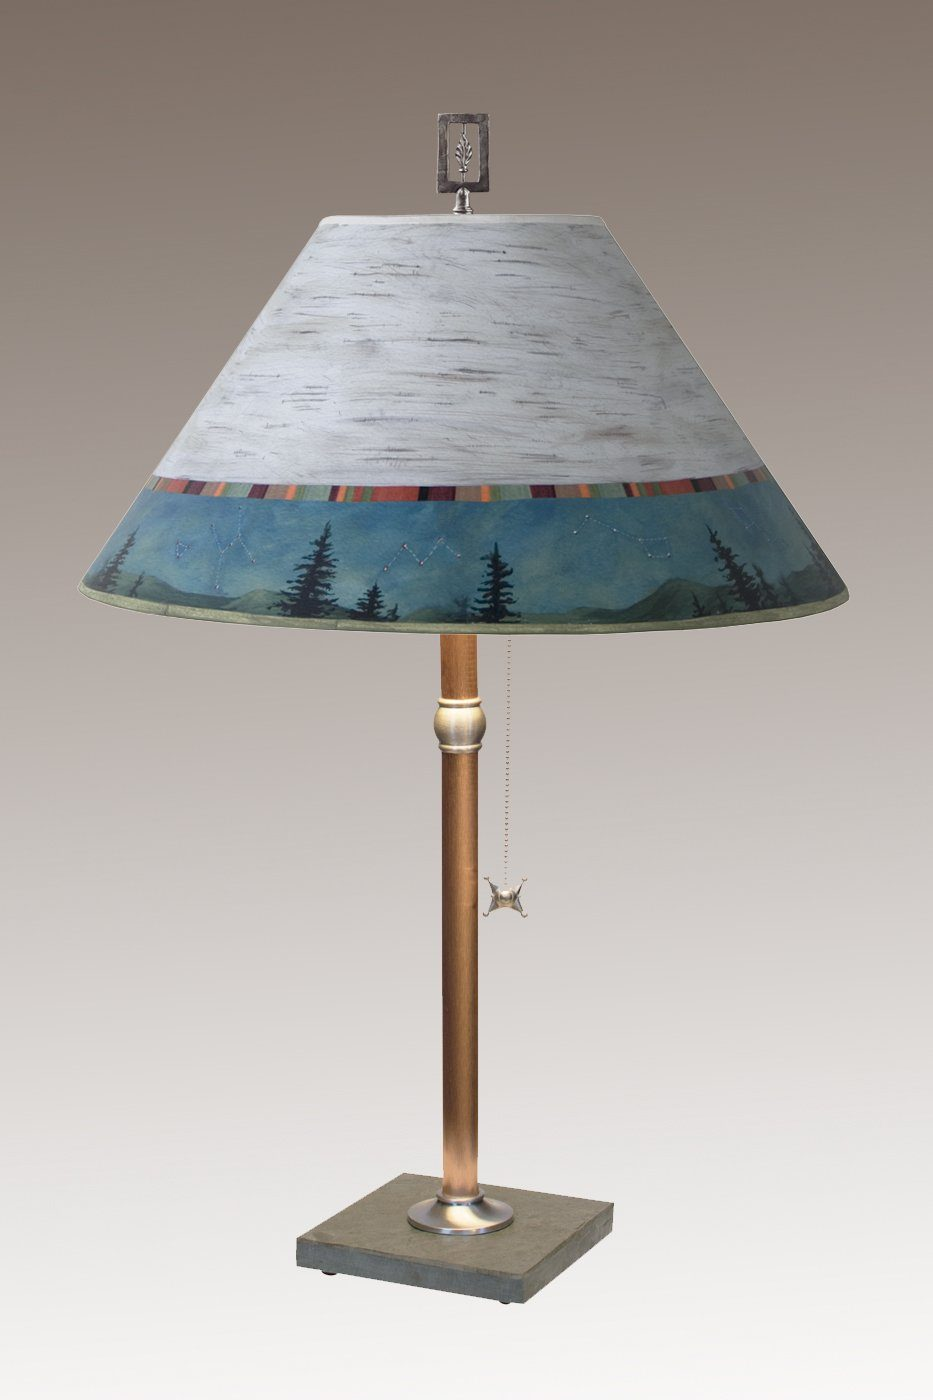 Copper Table Lamp on Vermont Slate with Large Conical Shade in Birch Midnight